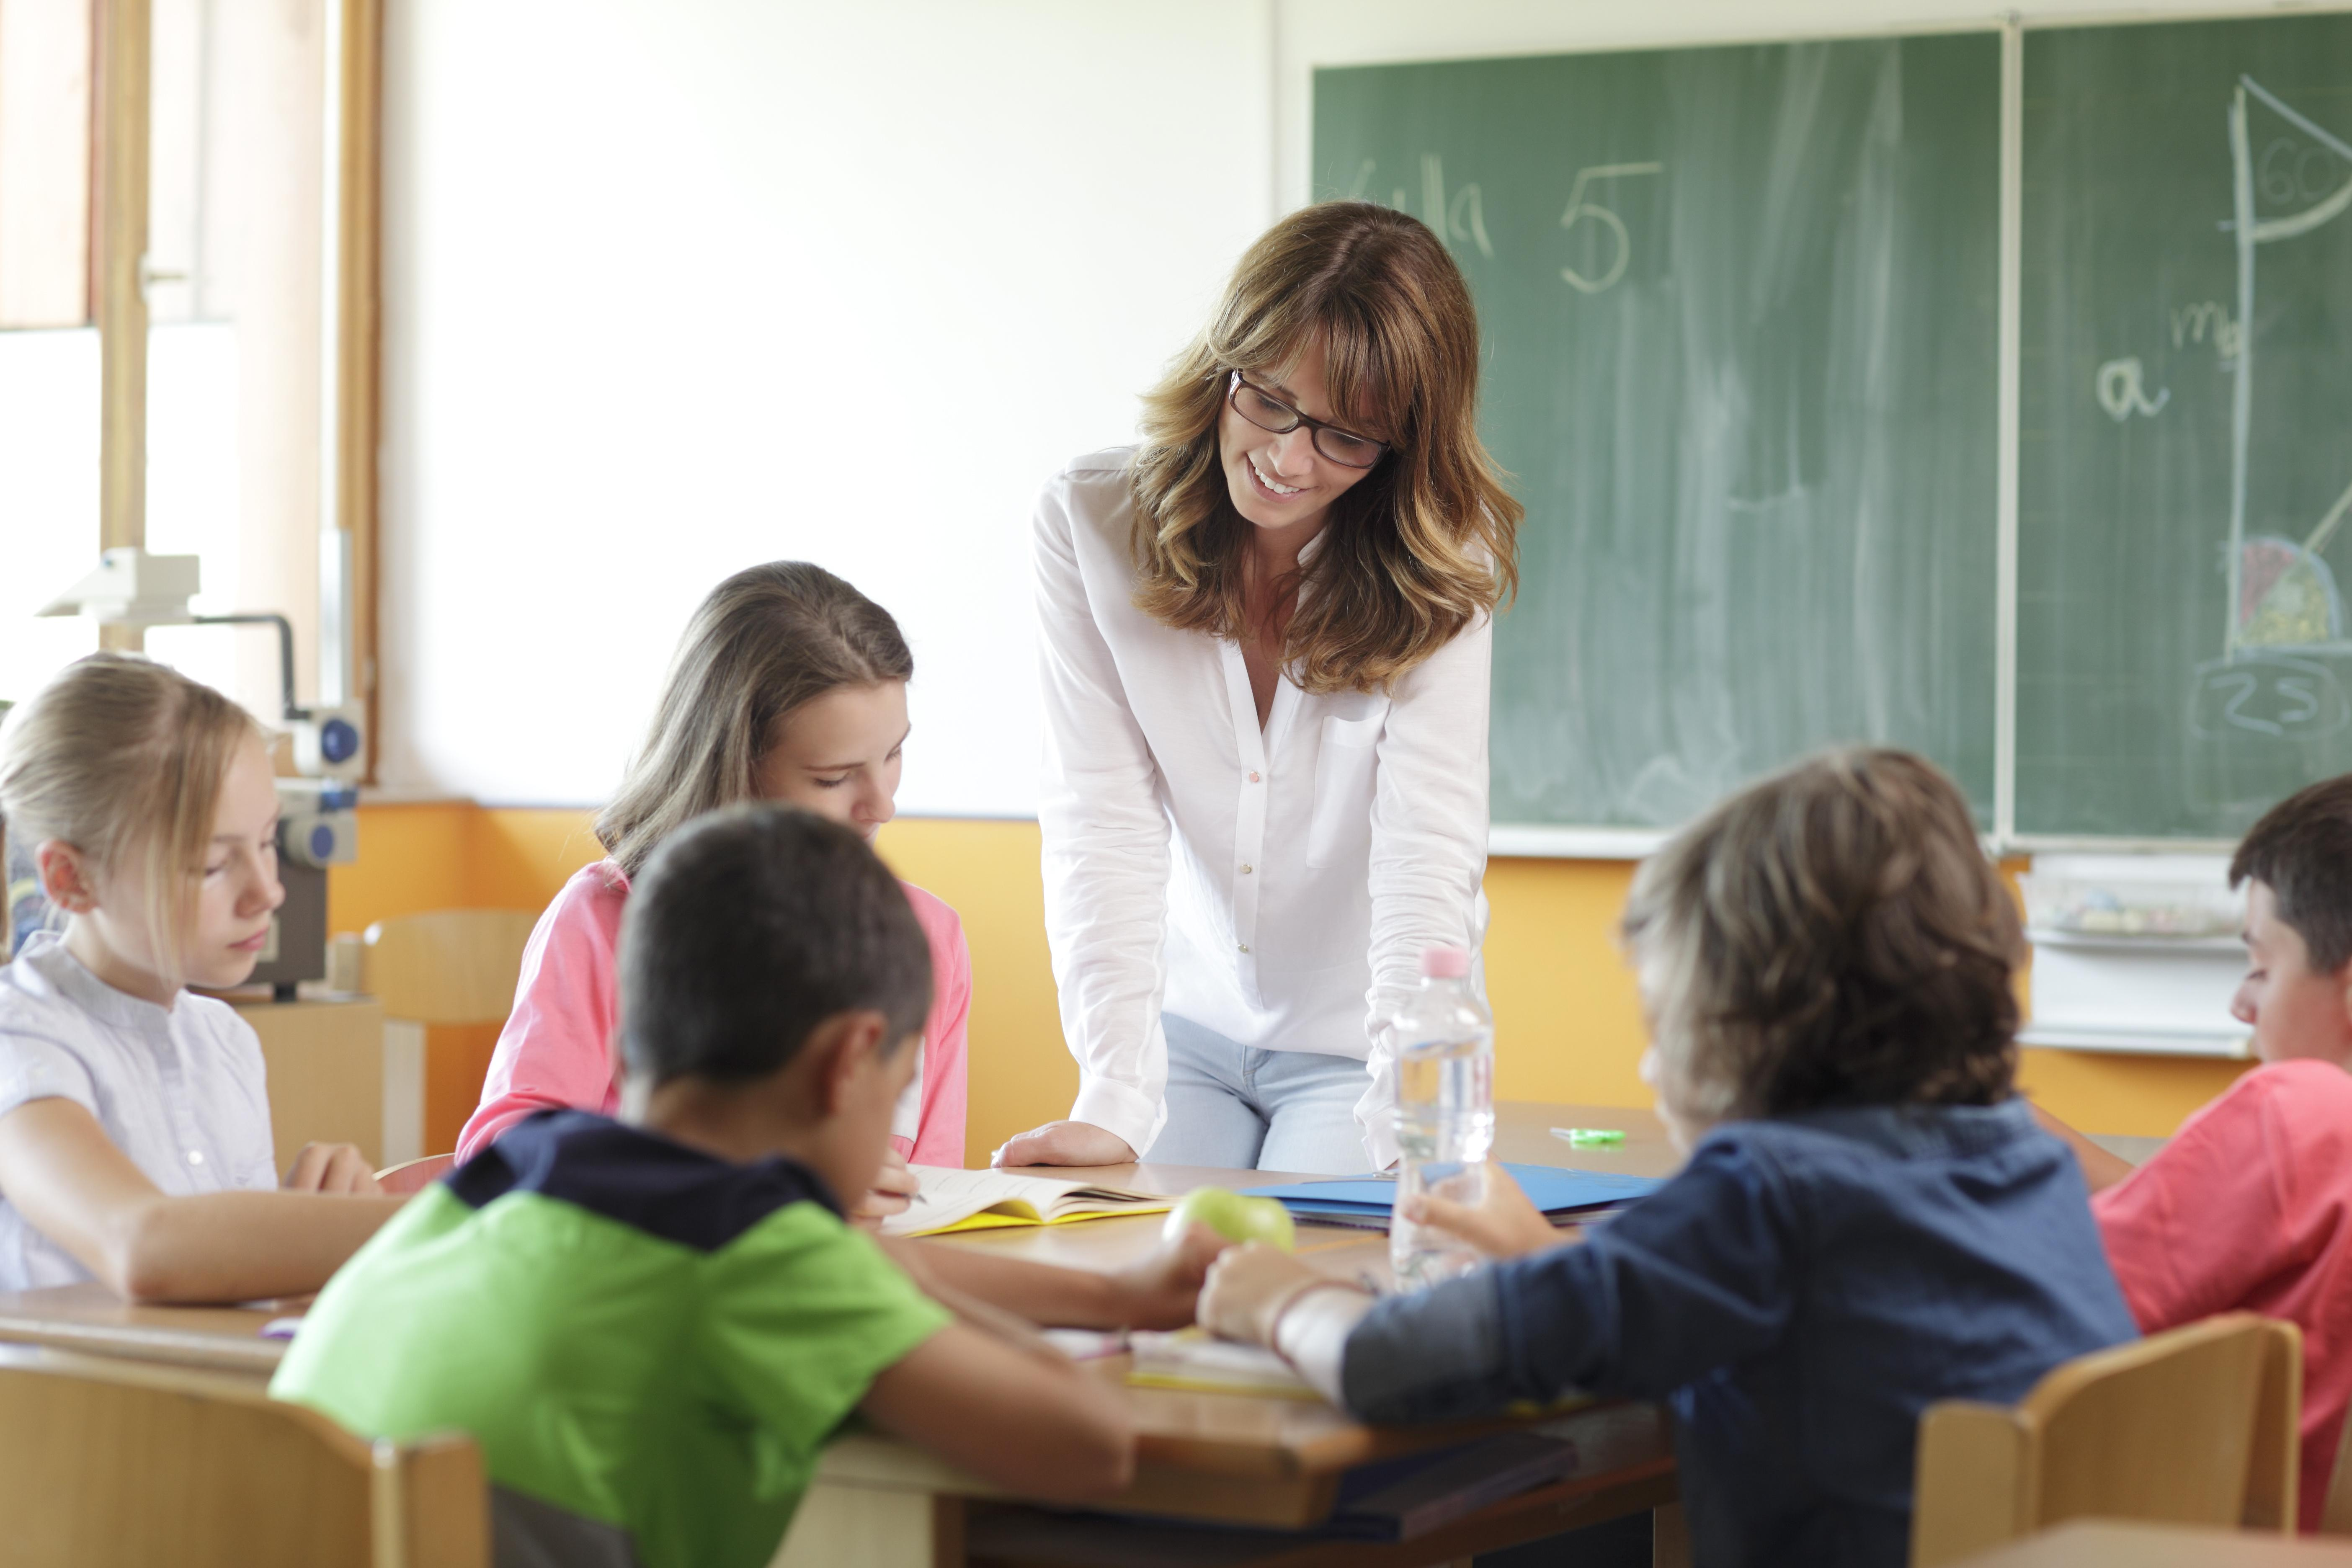 Practical Strategies to Resolve Teacher-Student Conflict